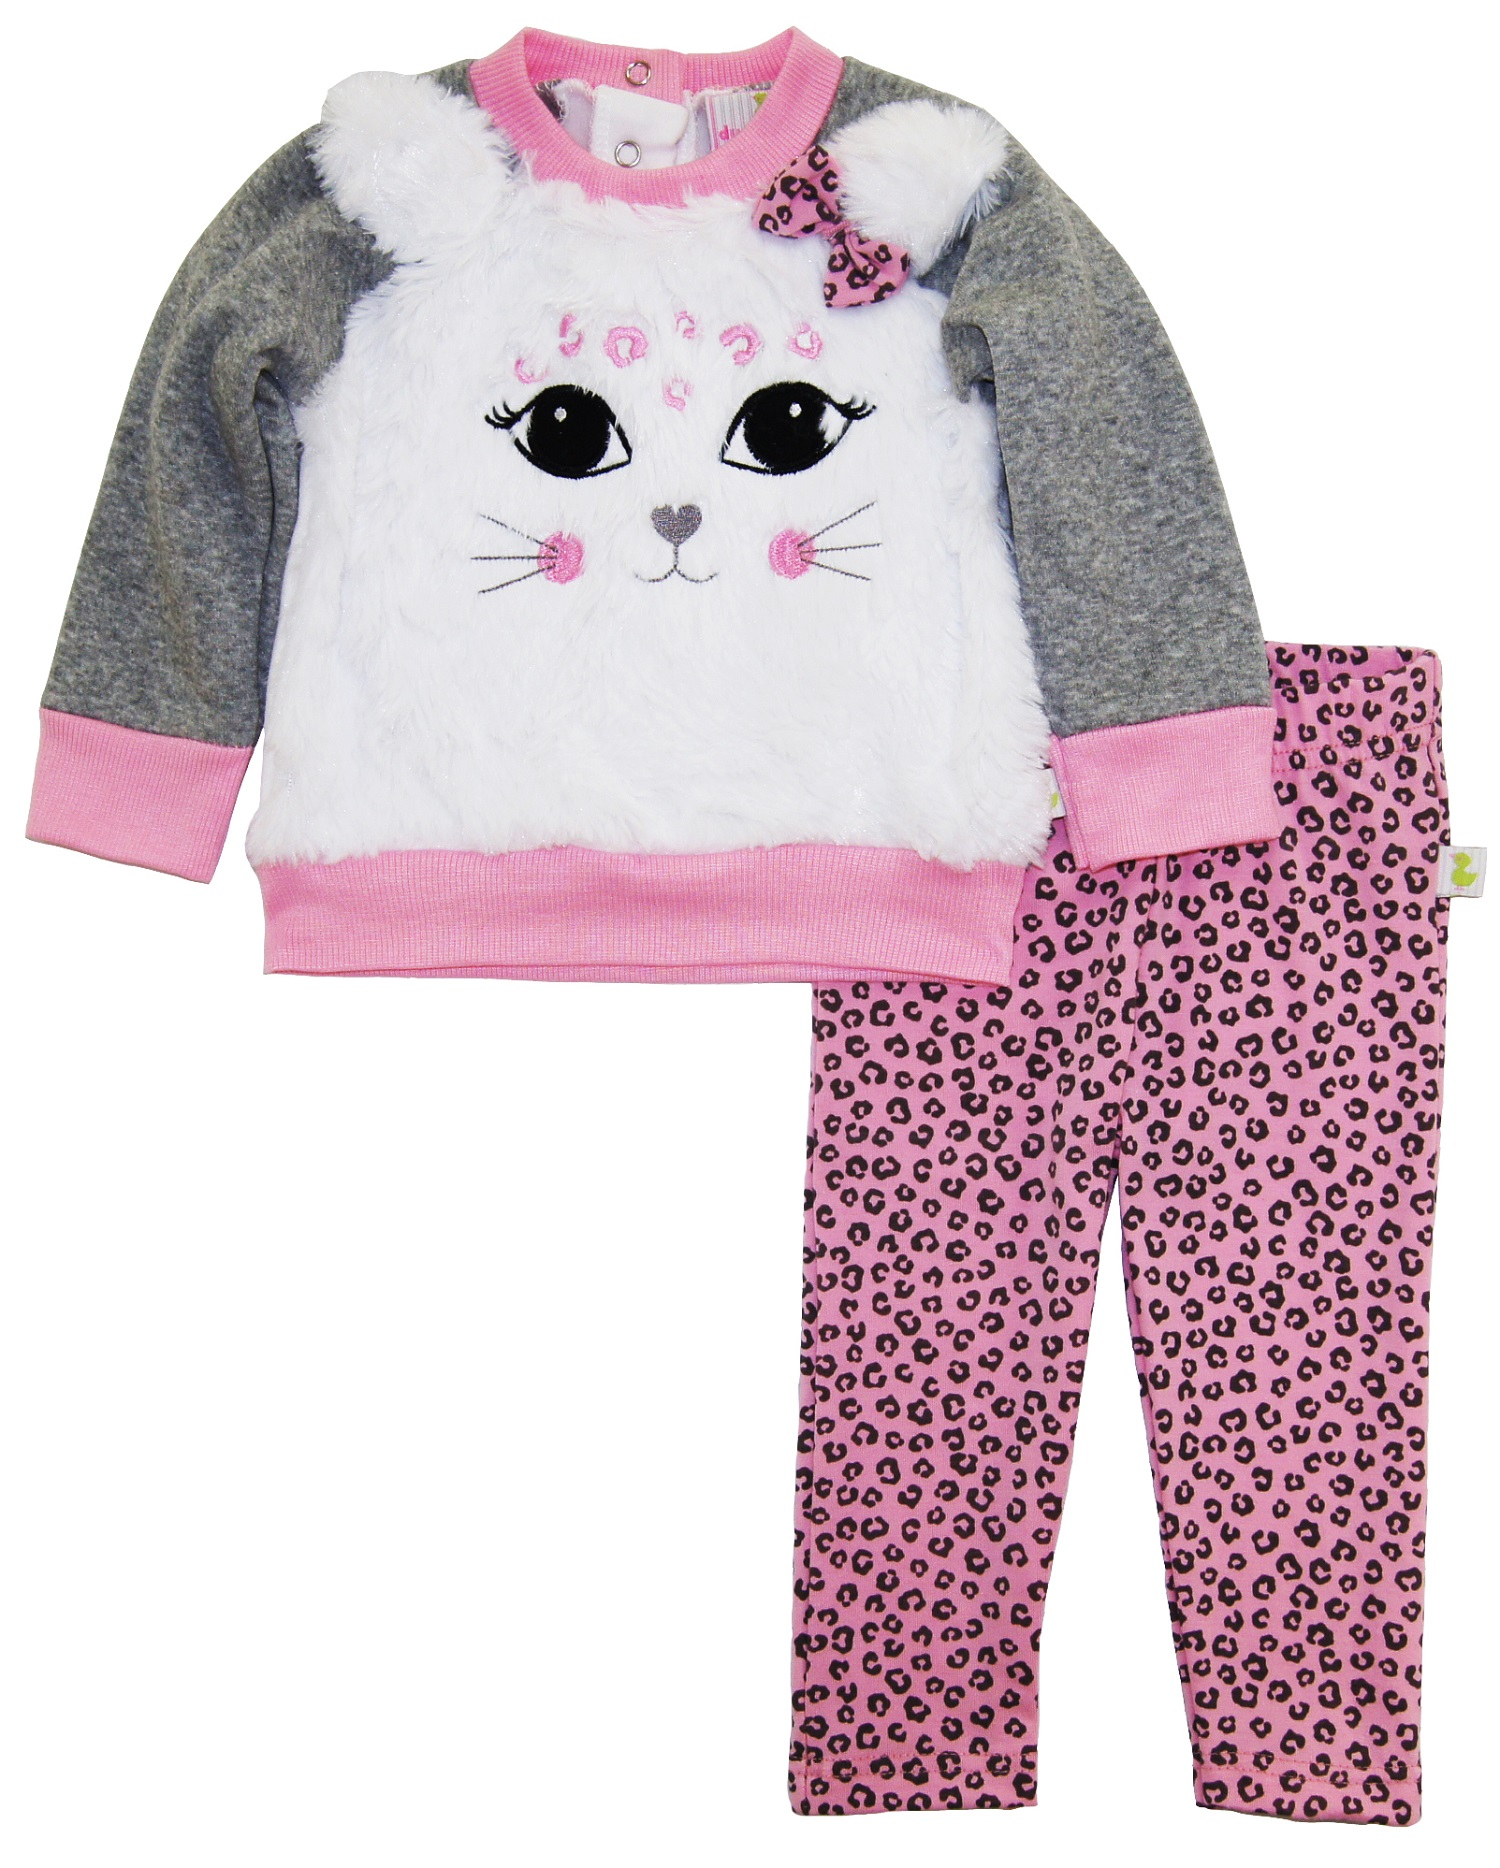 Duck Duck Goose Baby Girls Cute Kitty Outfit Cardigan Sweater Animal Print Legging Pant Gift Set